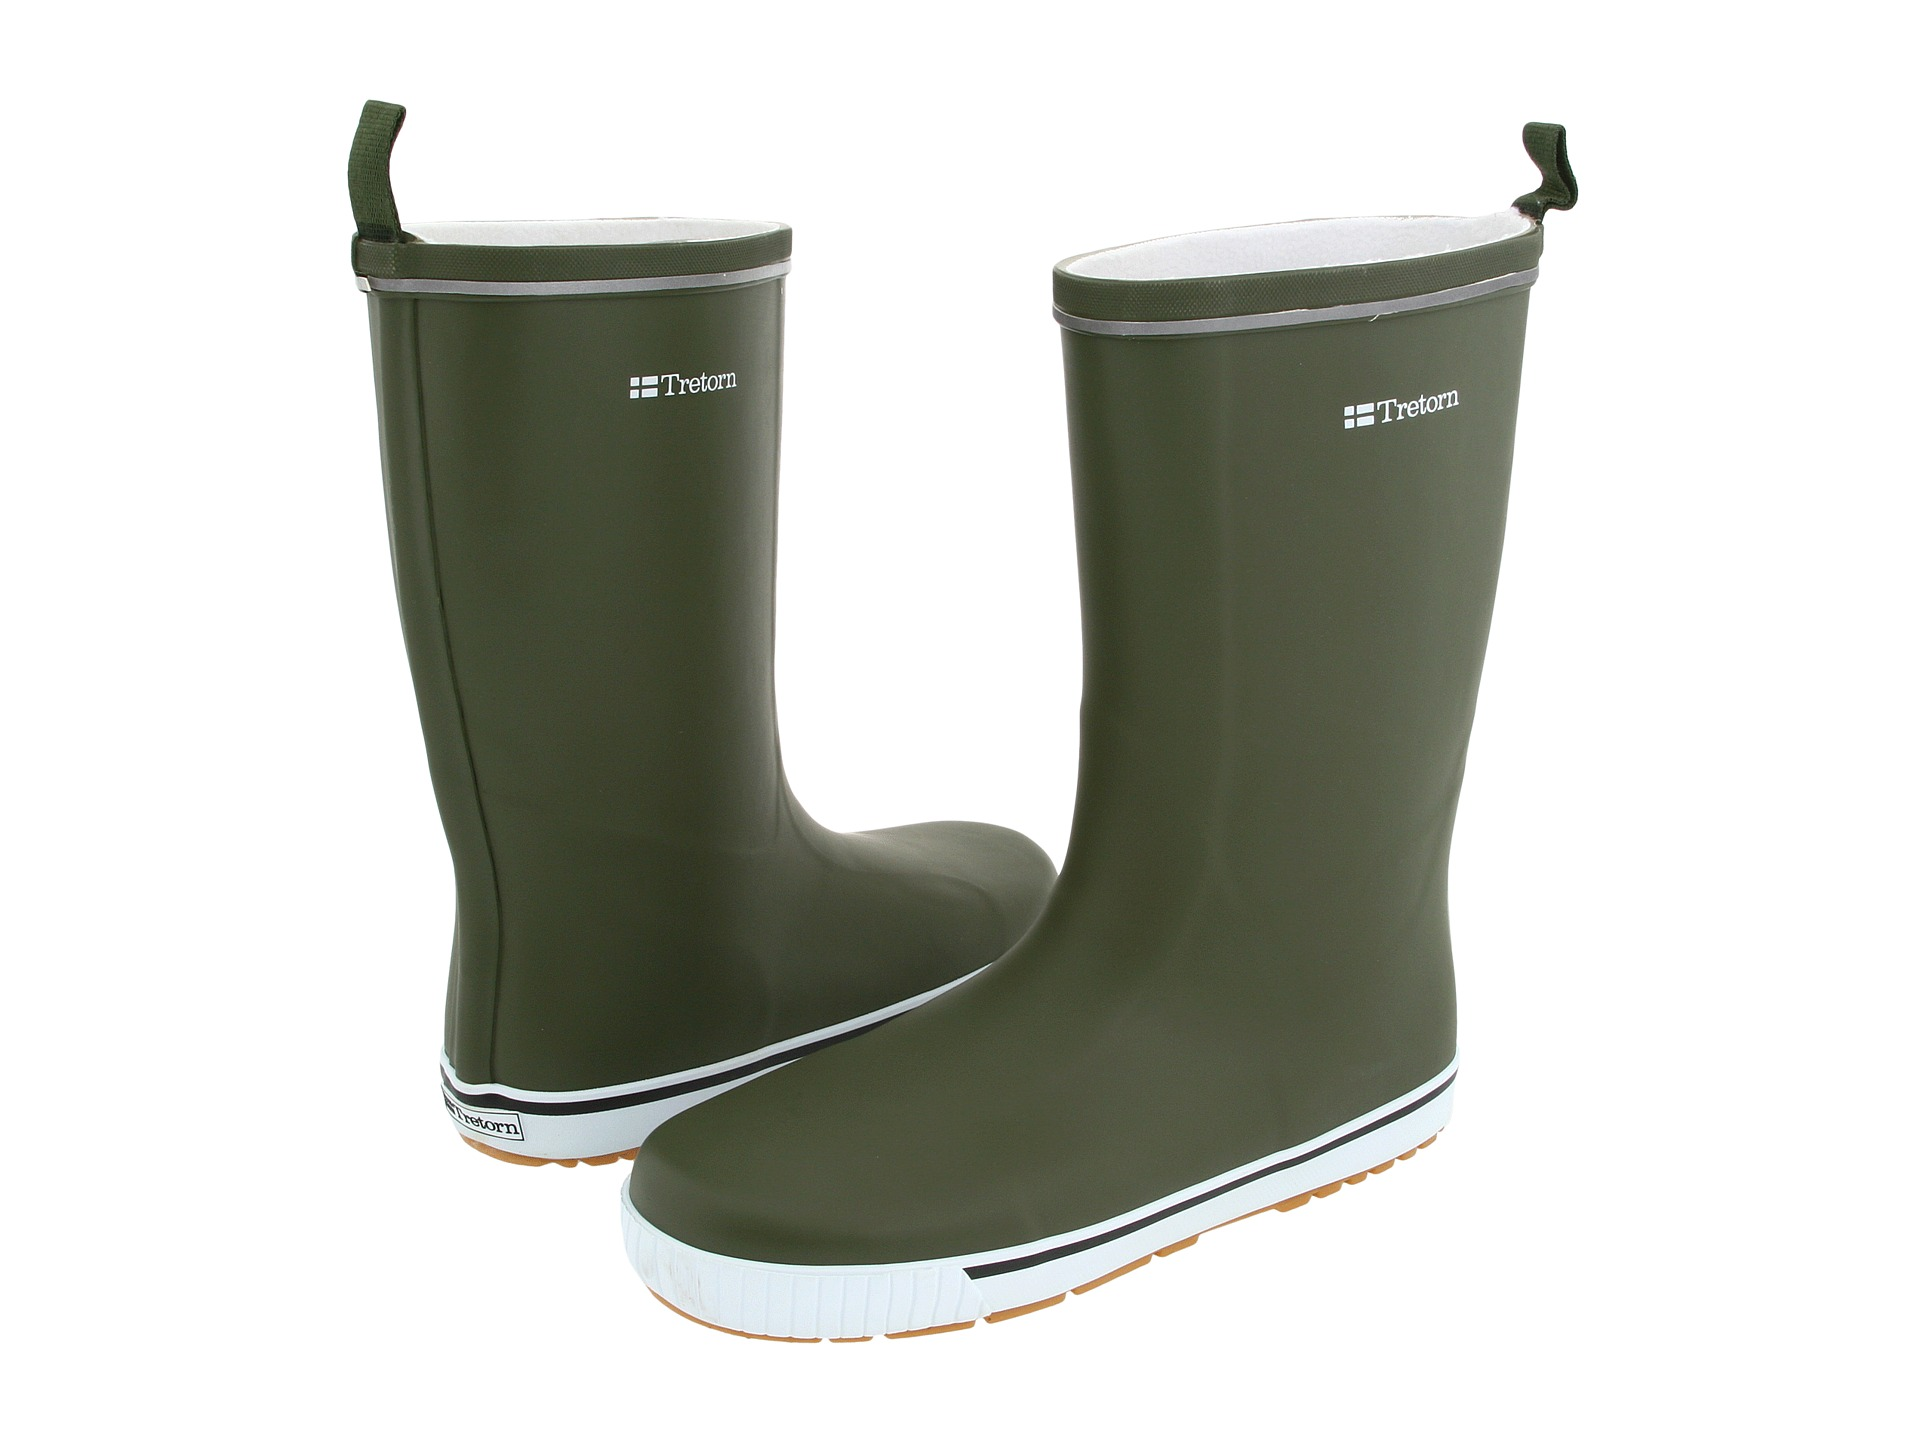 Tretorn Skerry Rubber Rain Boot Shoes Shipped Free At